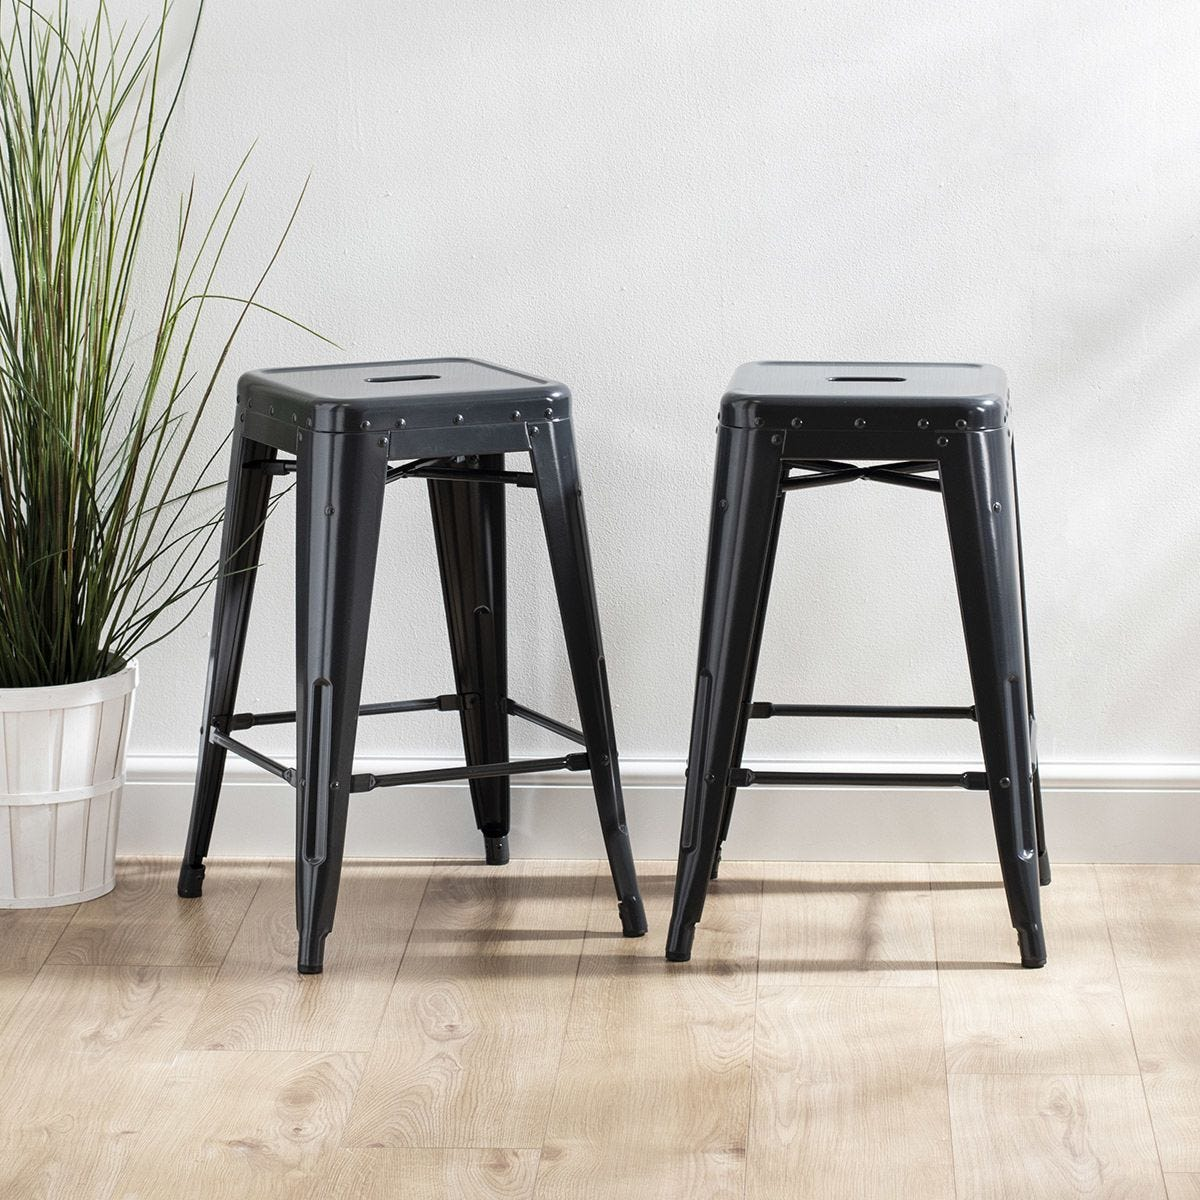 Home Scape Metal Bar Stools - 2 Pack